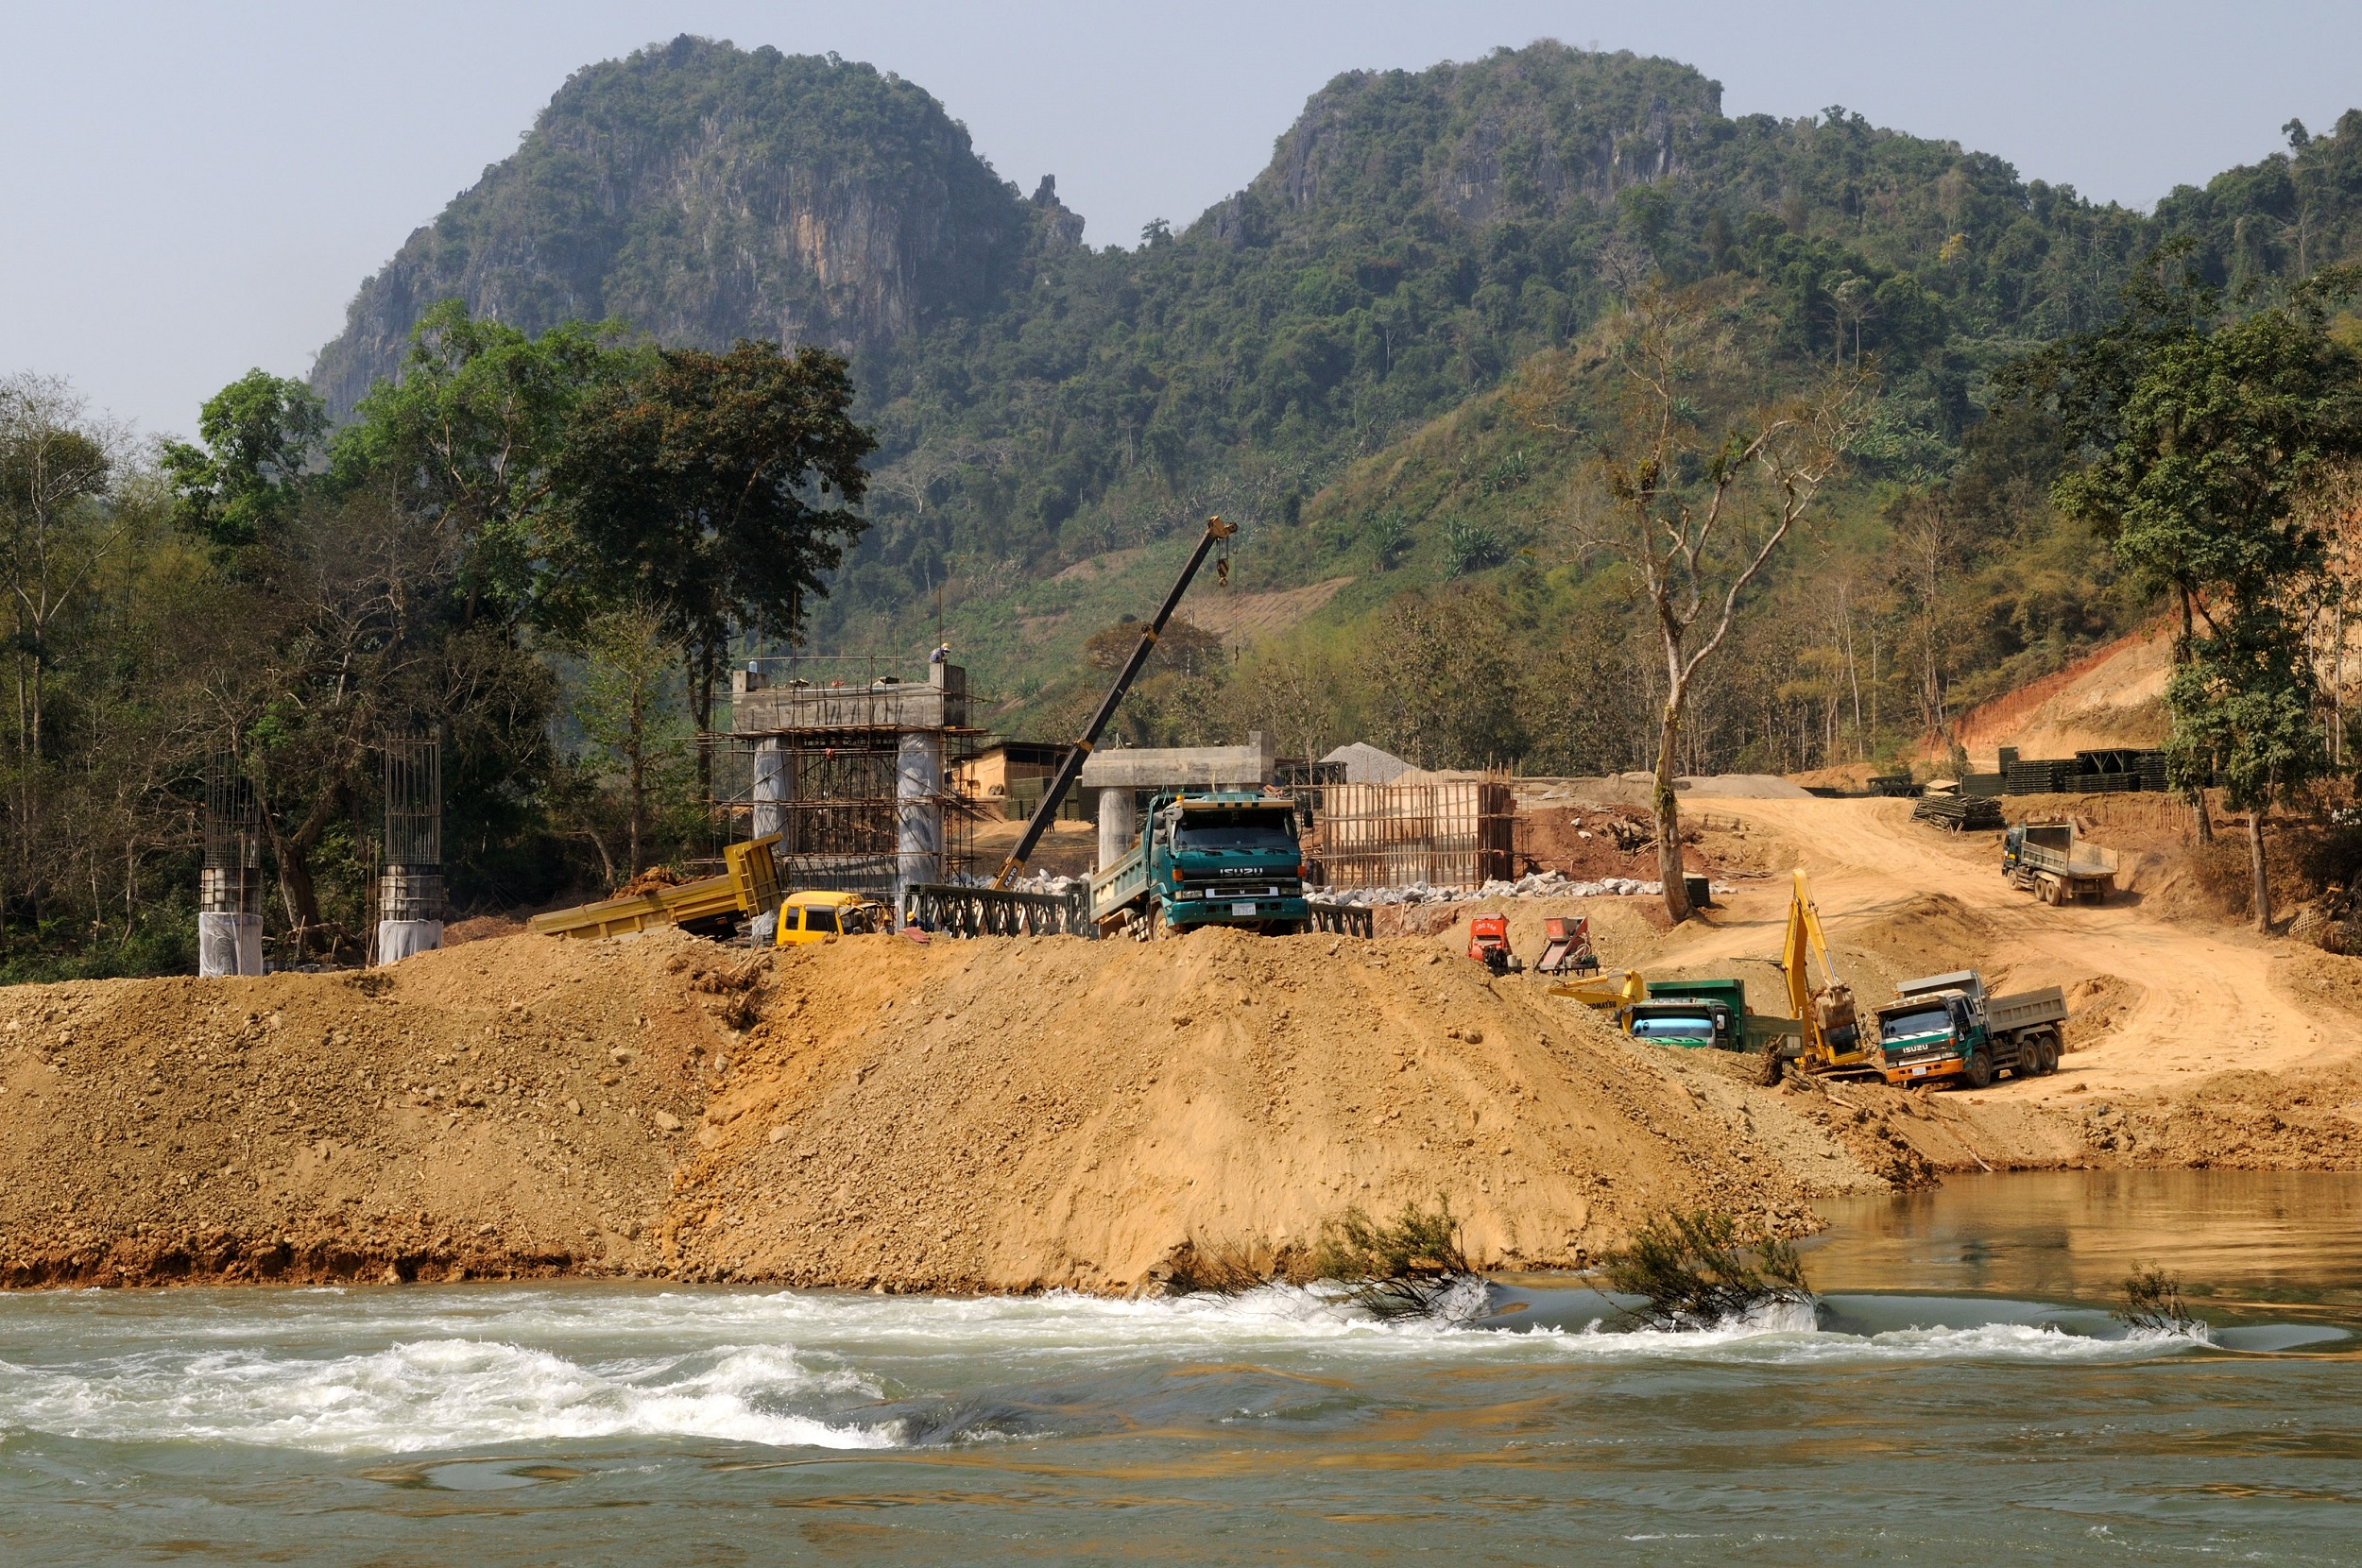 A hydro electric Dam being built by the Chinese on the Mekong River near Luang Prabang Laos (image: Alamy)